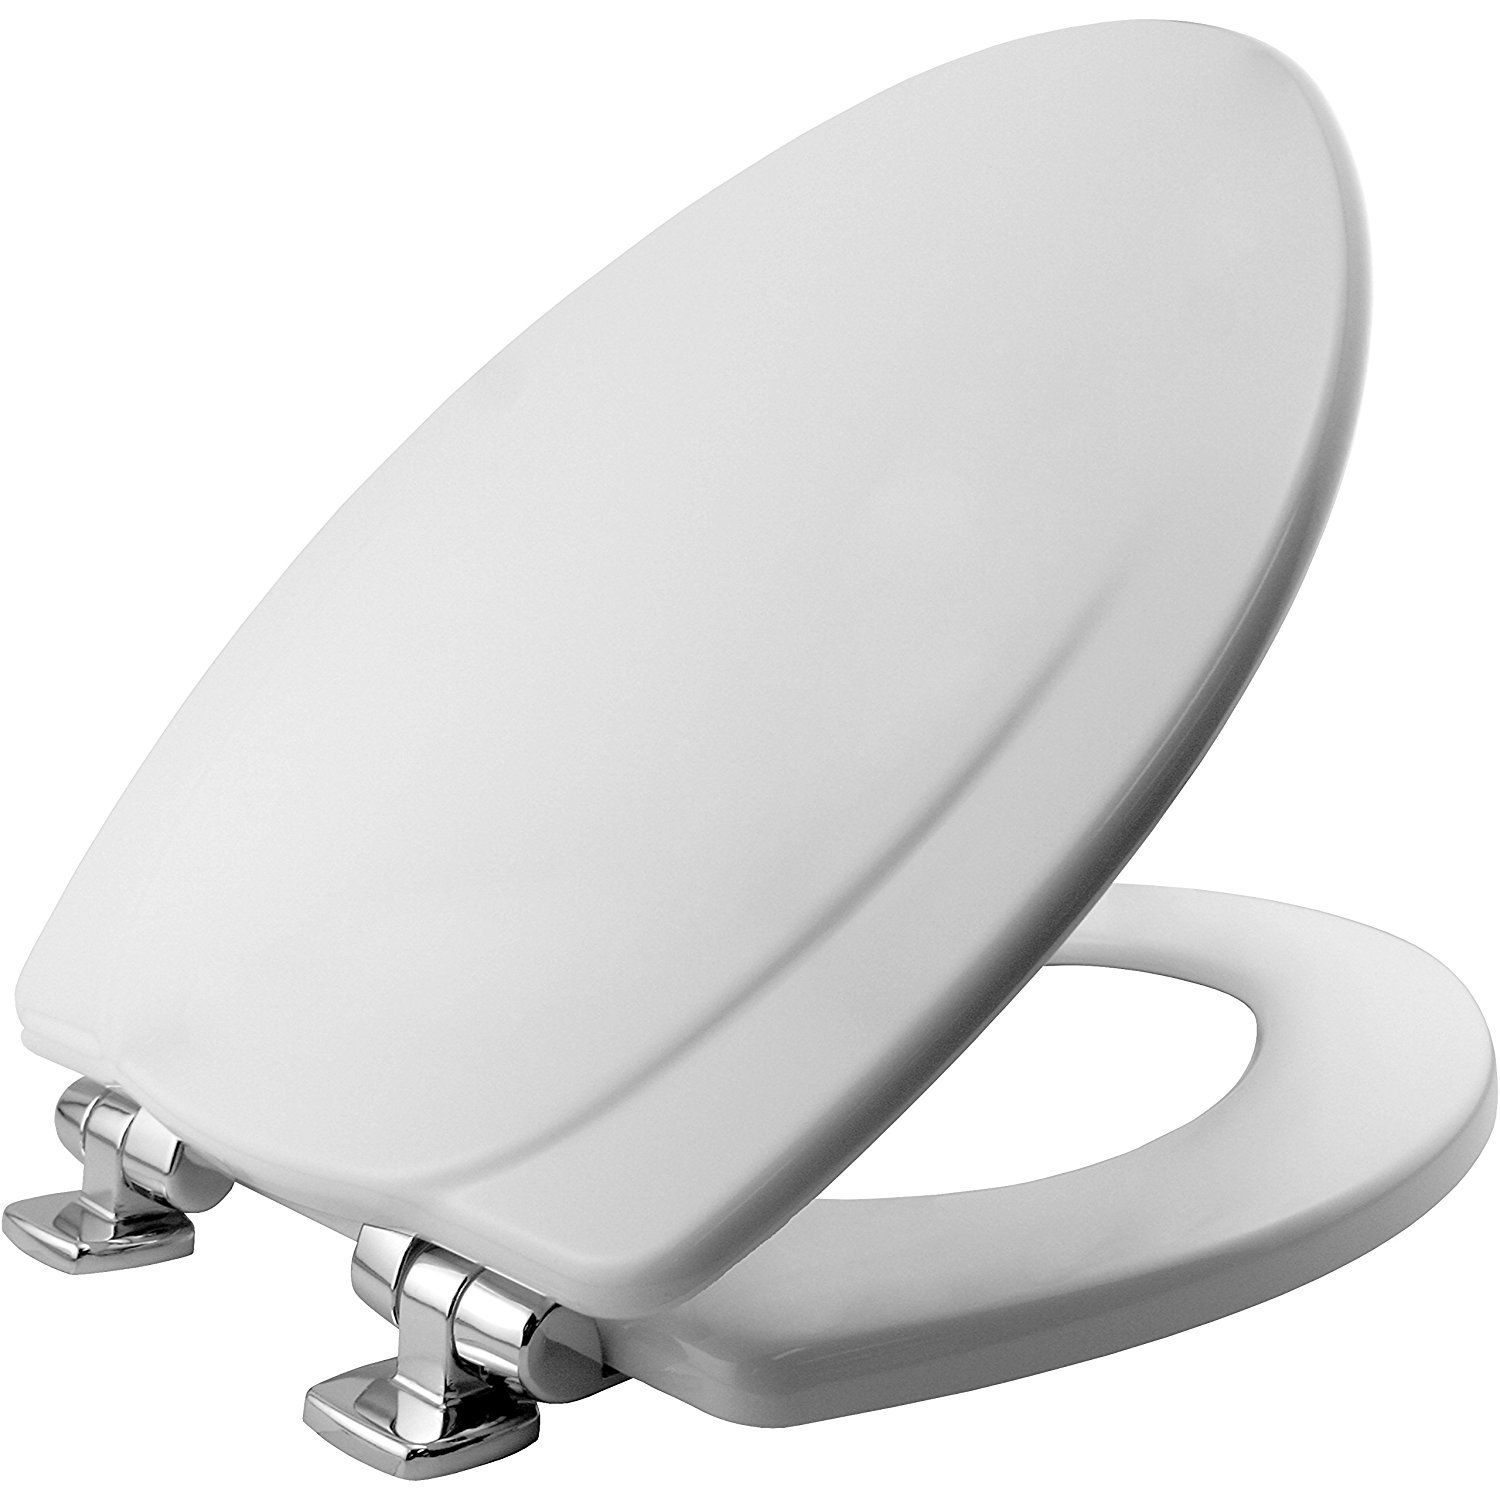 BEMIS 130CHSLB 000 130CHSL-000 Toilet Seat Elongated White